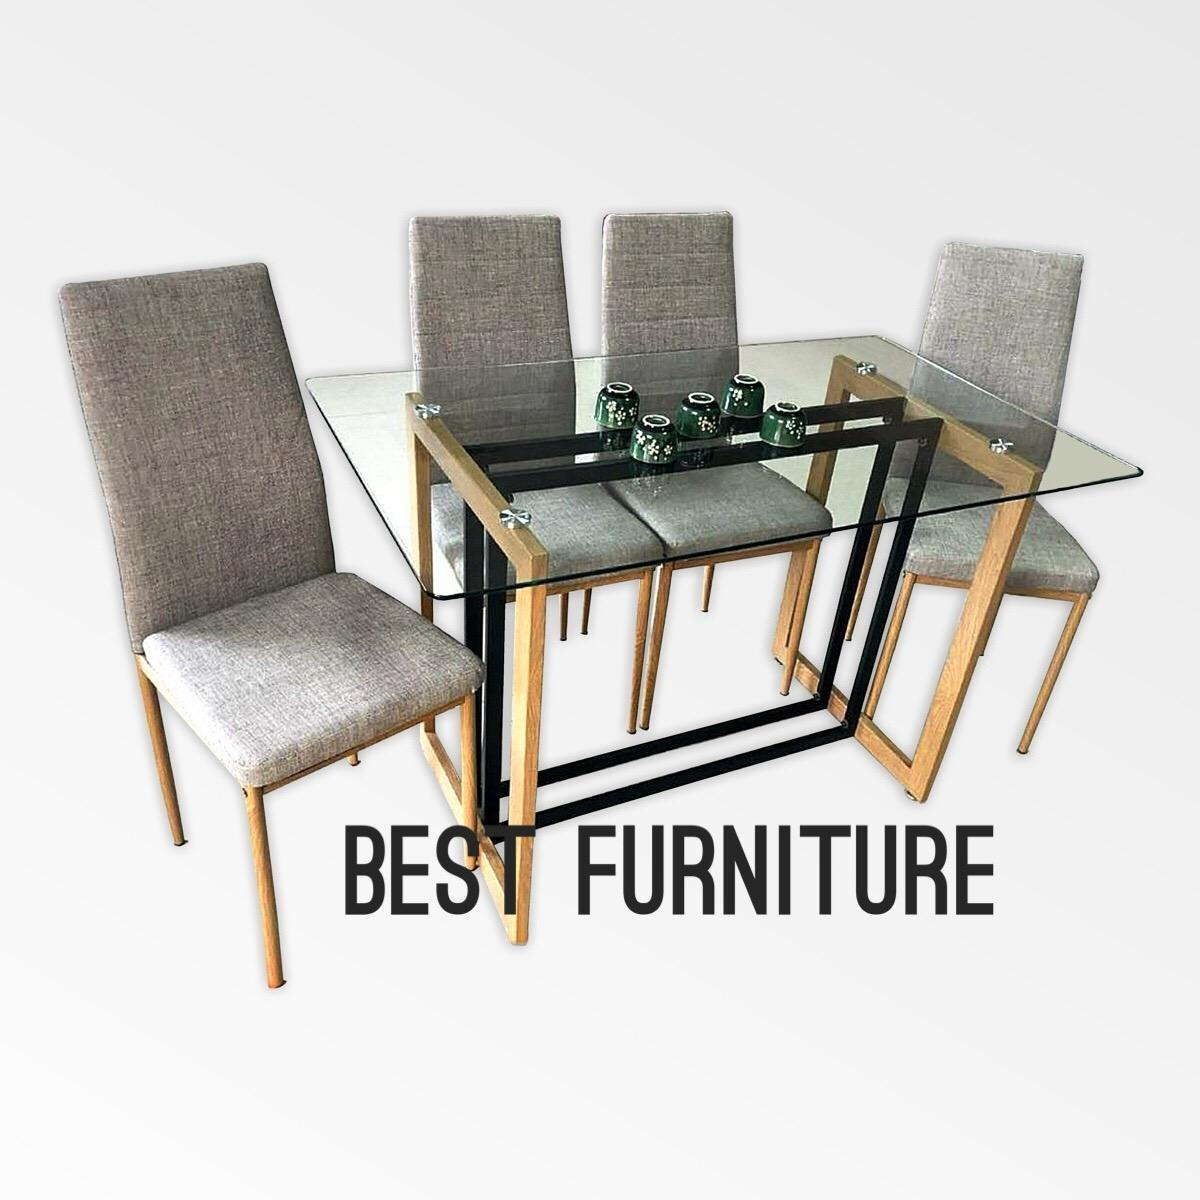 Best Furniture IMP-118 Meja Makan Set Minimalis uk 120x70 dan 4 Kursi - Abu 8423bf06f0